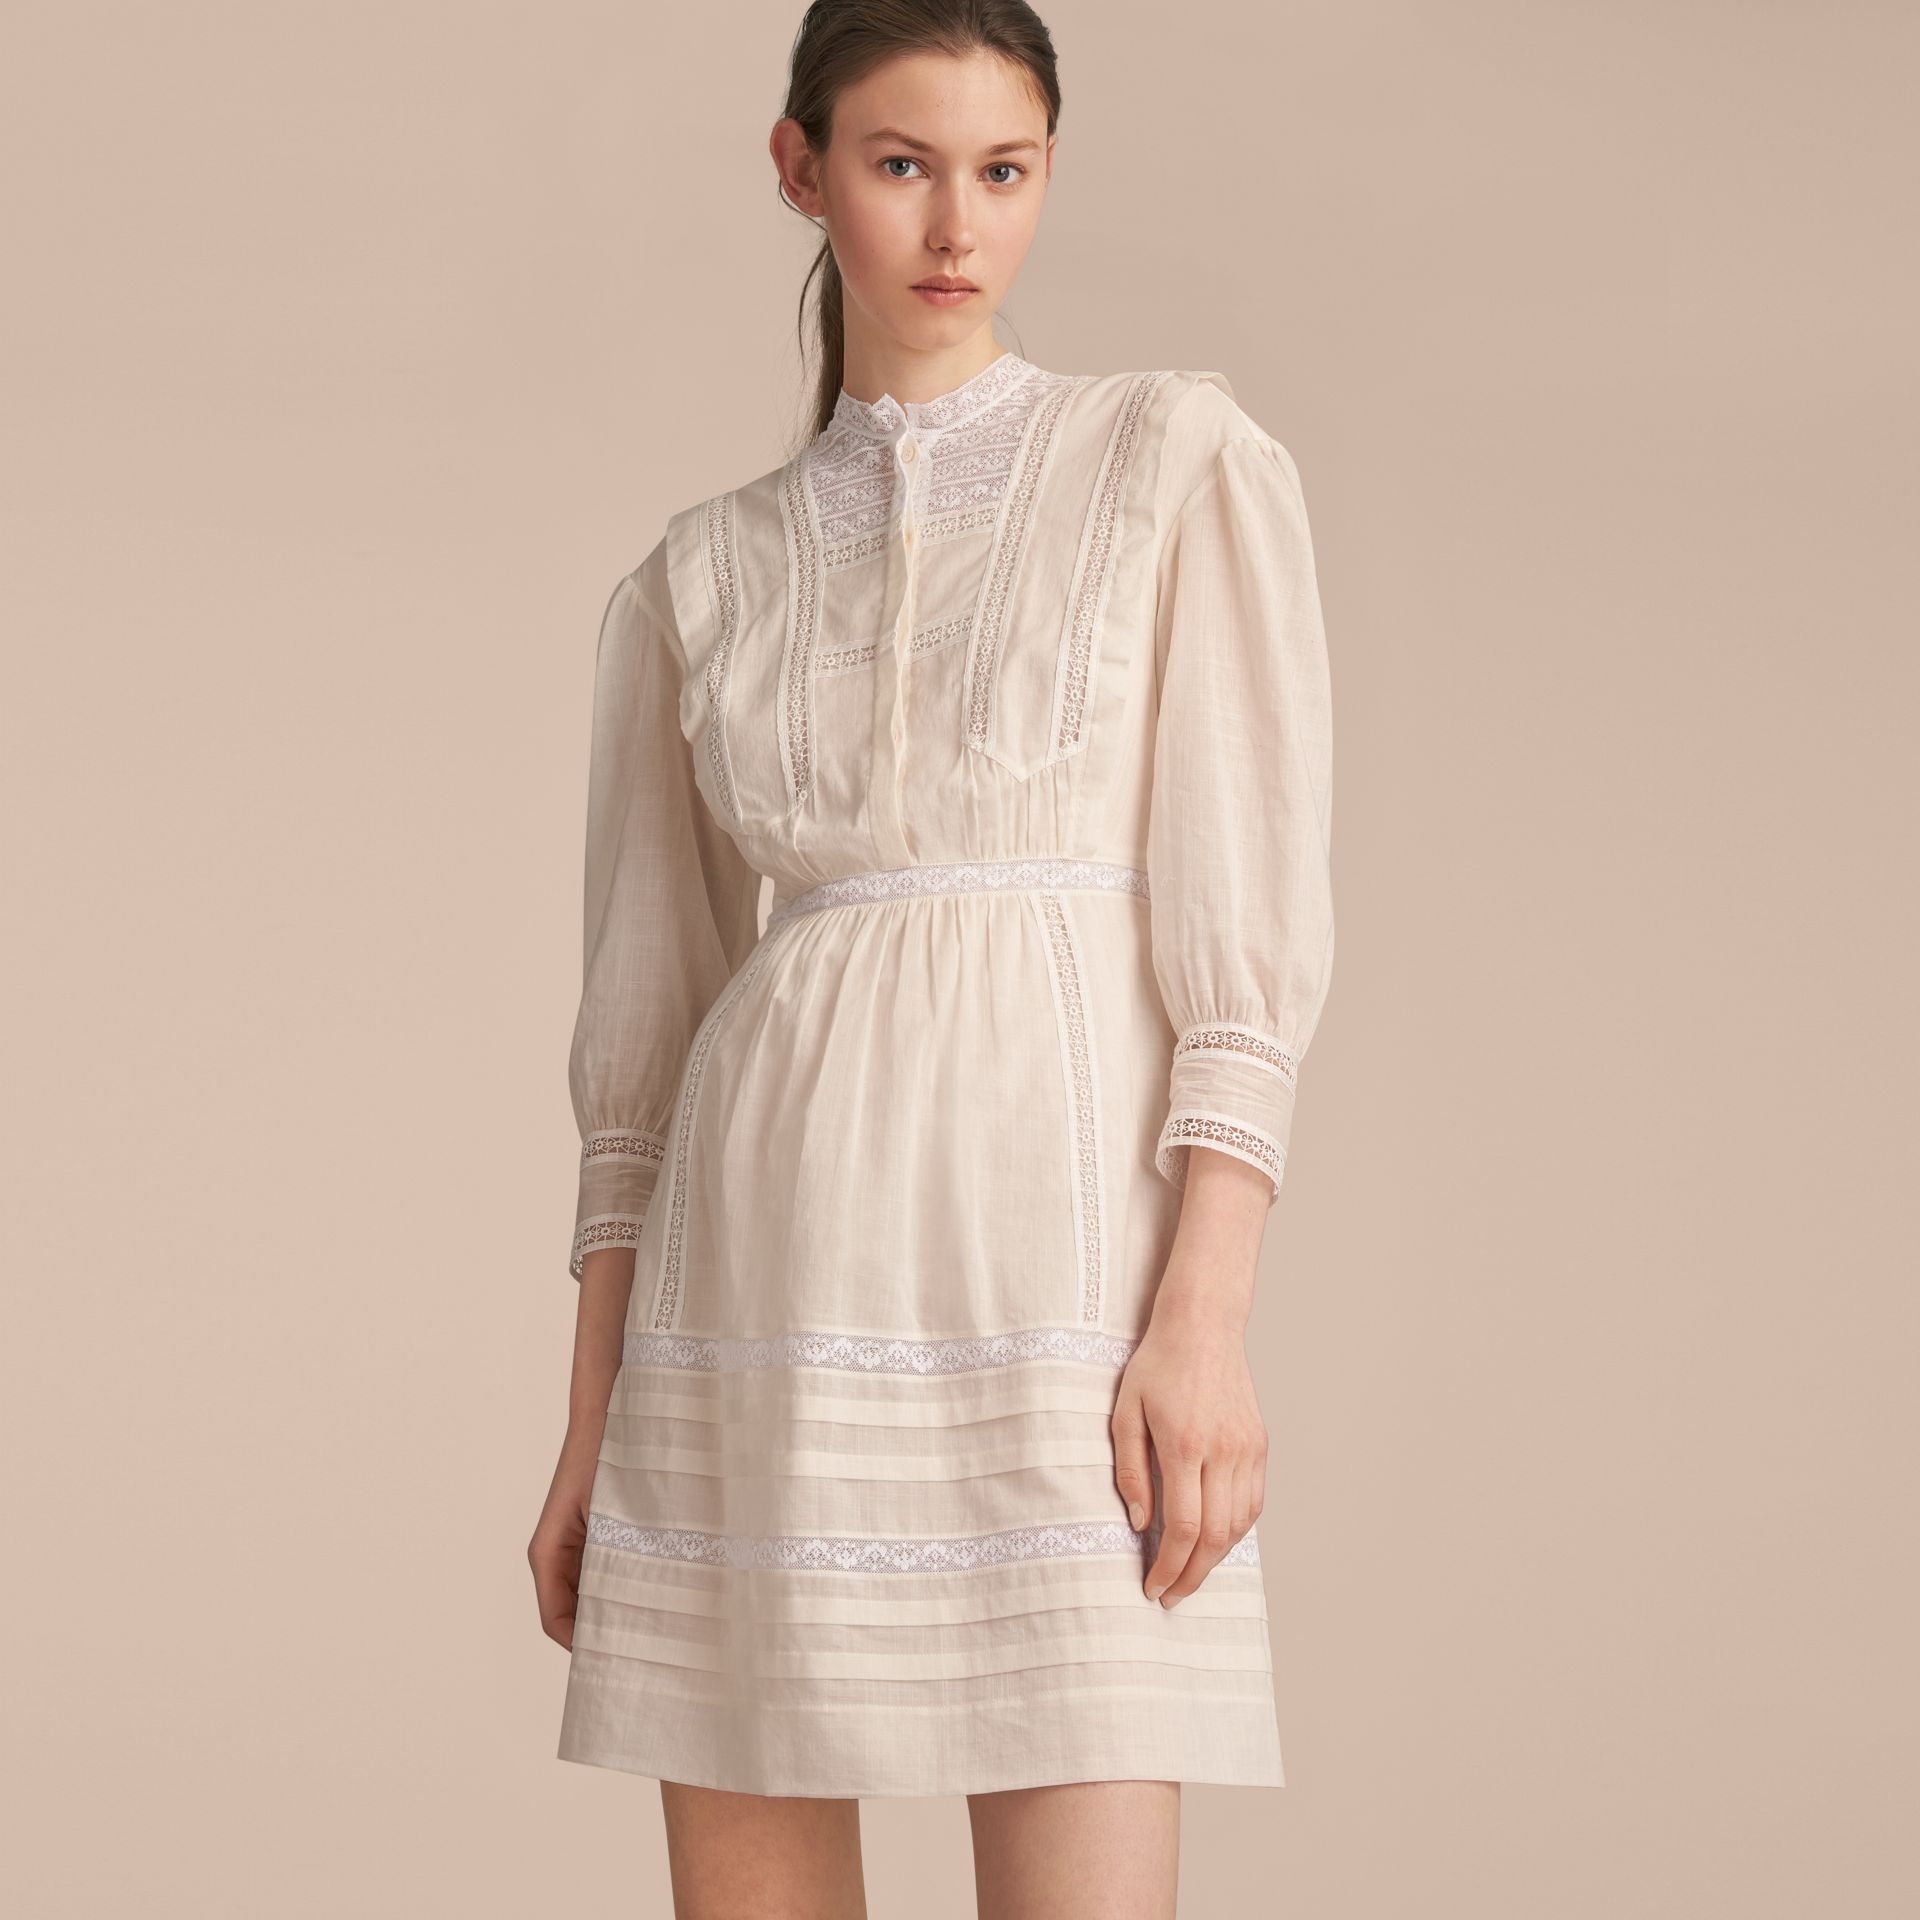 Lace Detail Cotton Voile Dress in Natural White - Women | Burberry - gallery image 6